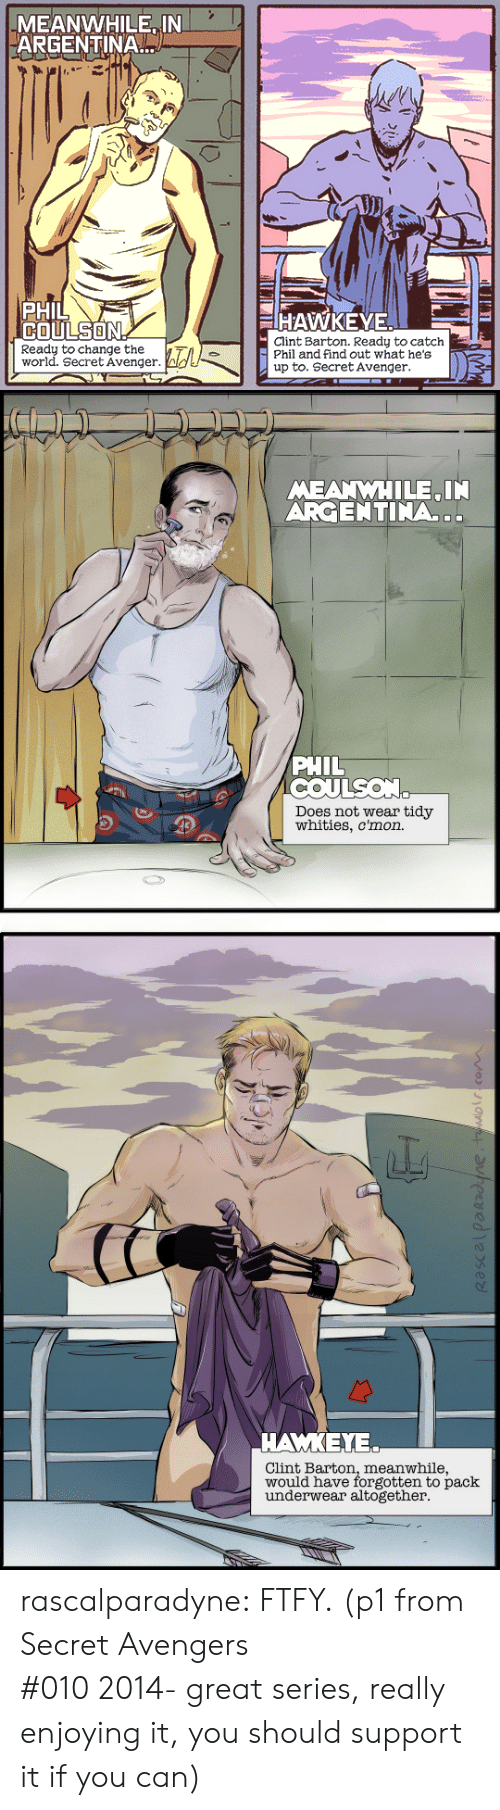 hawkeye: MEANWHILE IN  ARGENTINA  PHIL  COULSON  HAWKEYE  Clint Barton. Ready to catch  Phil and find out what he's  up to. Secret Avenger  Ready to change the  world. Secret Avenger.   MEANWHILE IN  ARGENTINA..  PHIL  COULSON  Does not wear tidy  whities, c'mon.   ΑΜΚΕΥ.  Clint Barton, meanwhile,  would have forgotten to pack  underwear altogether rascalparadyne: FTFY. (p1 from Secret Avengers #010 2014- great series, really enjoying it, you should support it if you can)